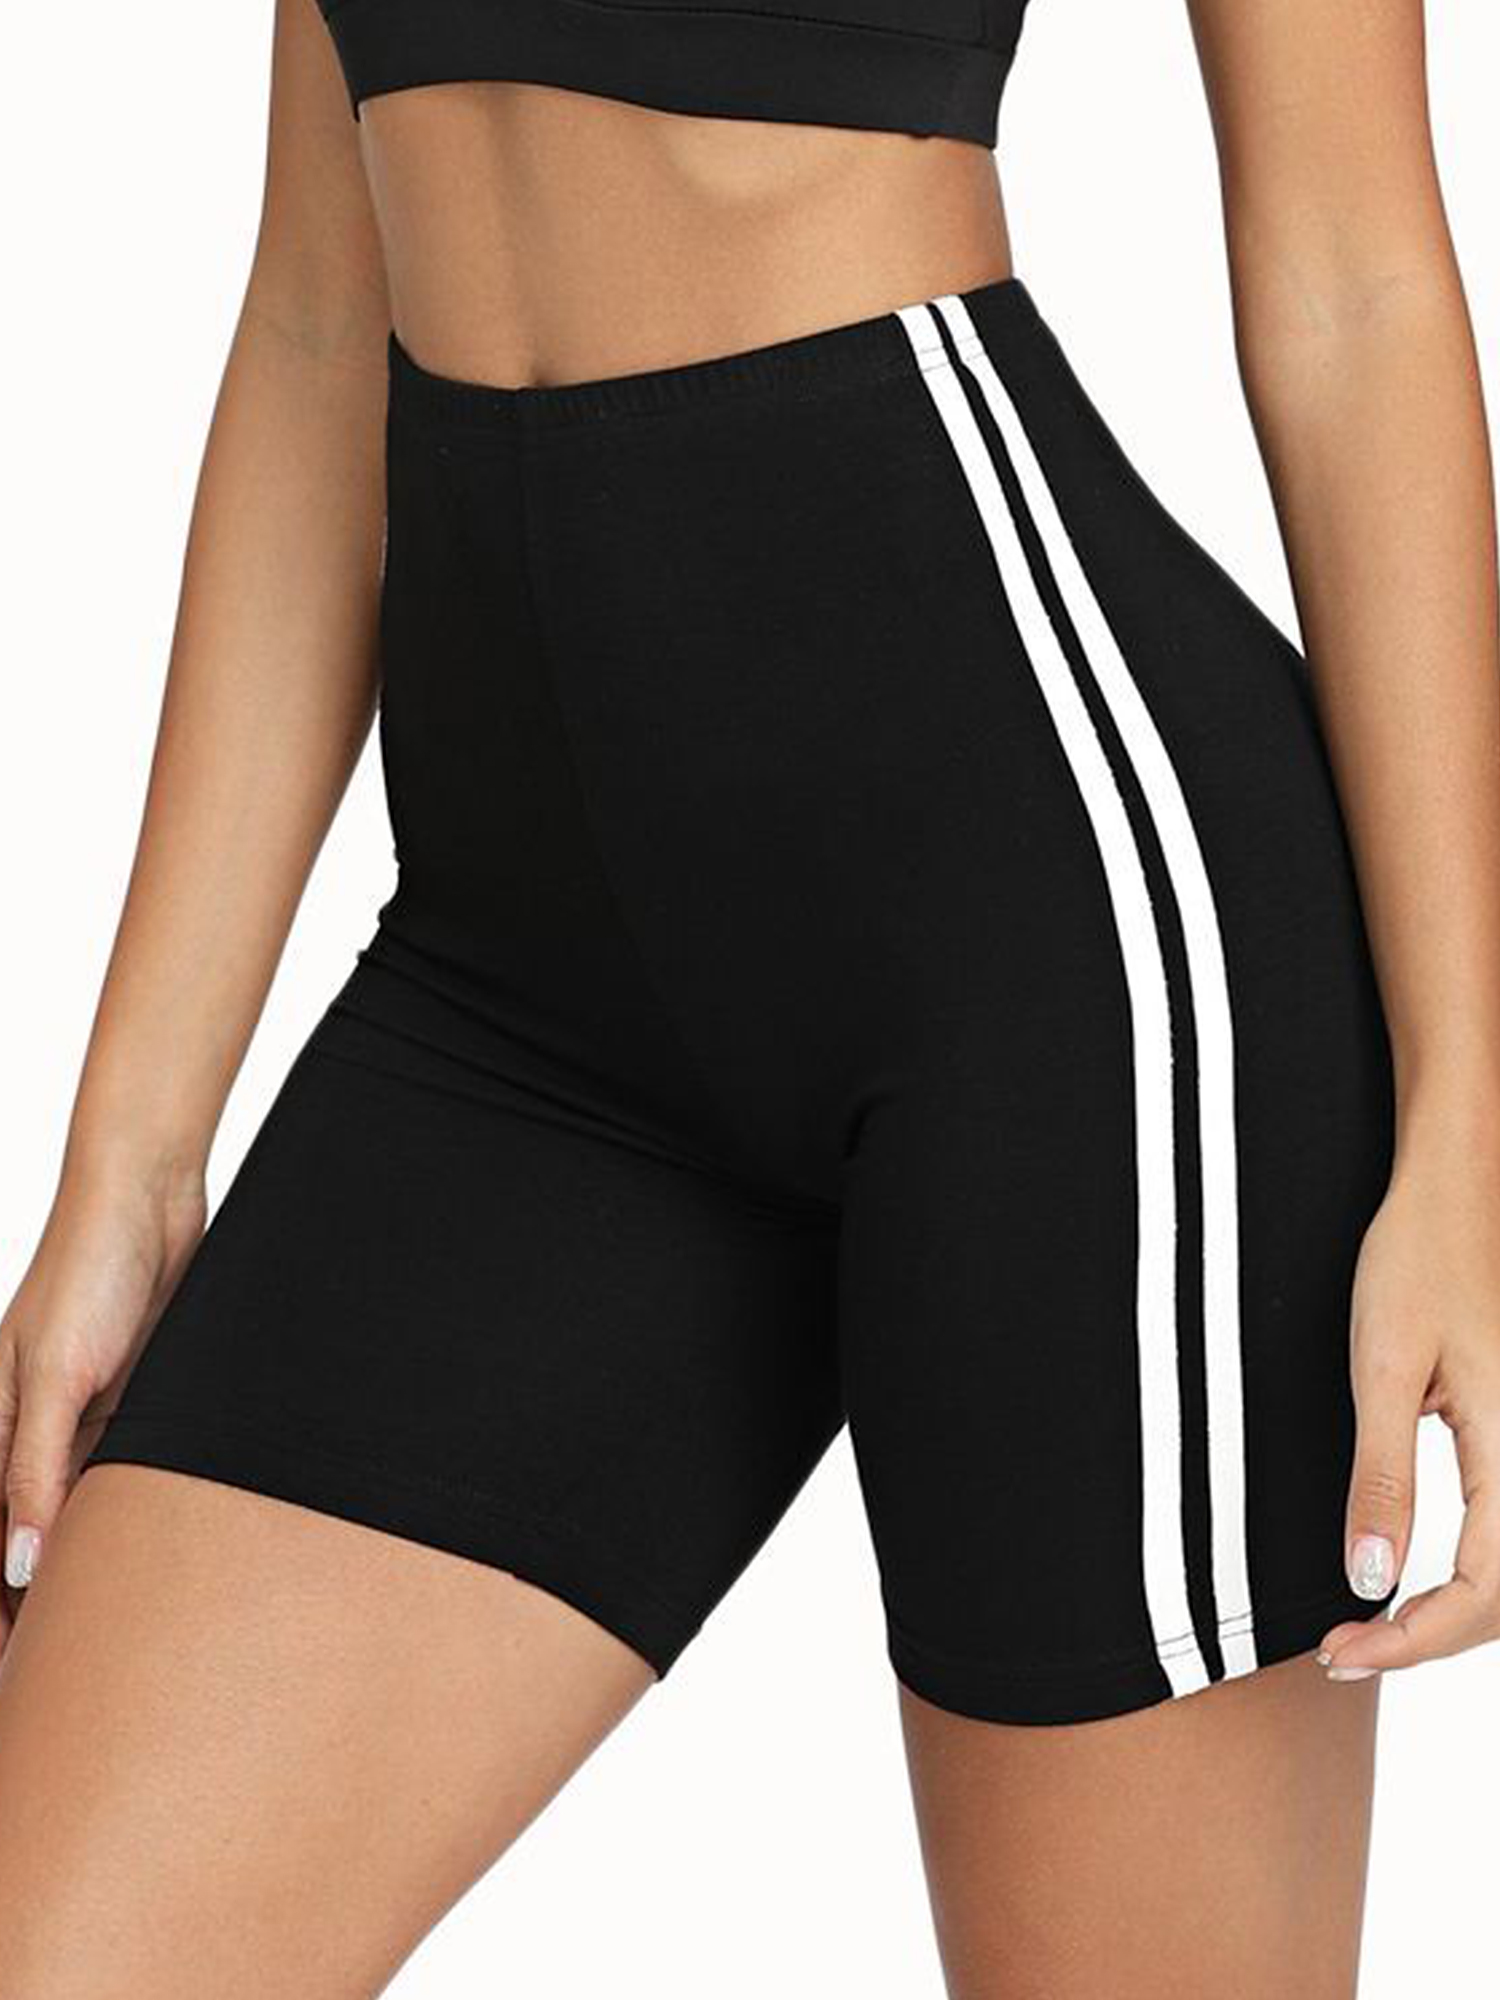 USEACCE Running Athletic Compression Shorts Yoga Shorts Women High Waist Workout Pants with Pockets